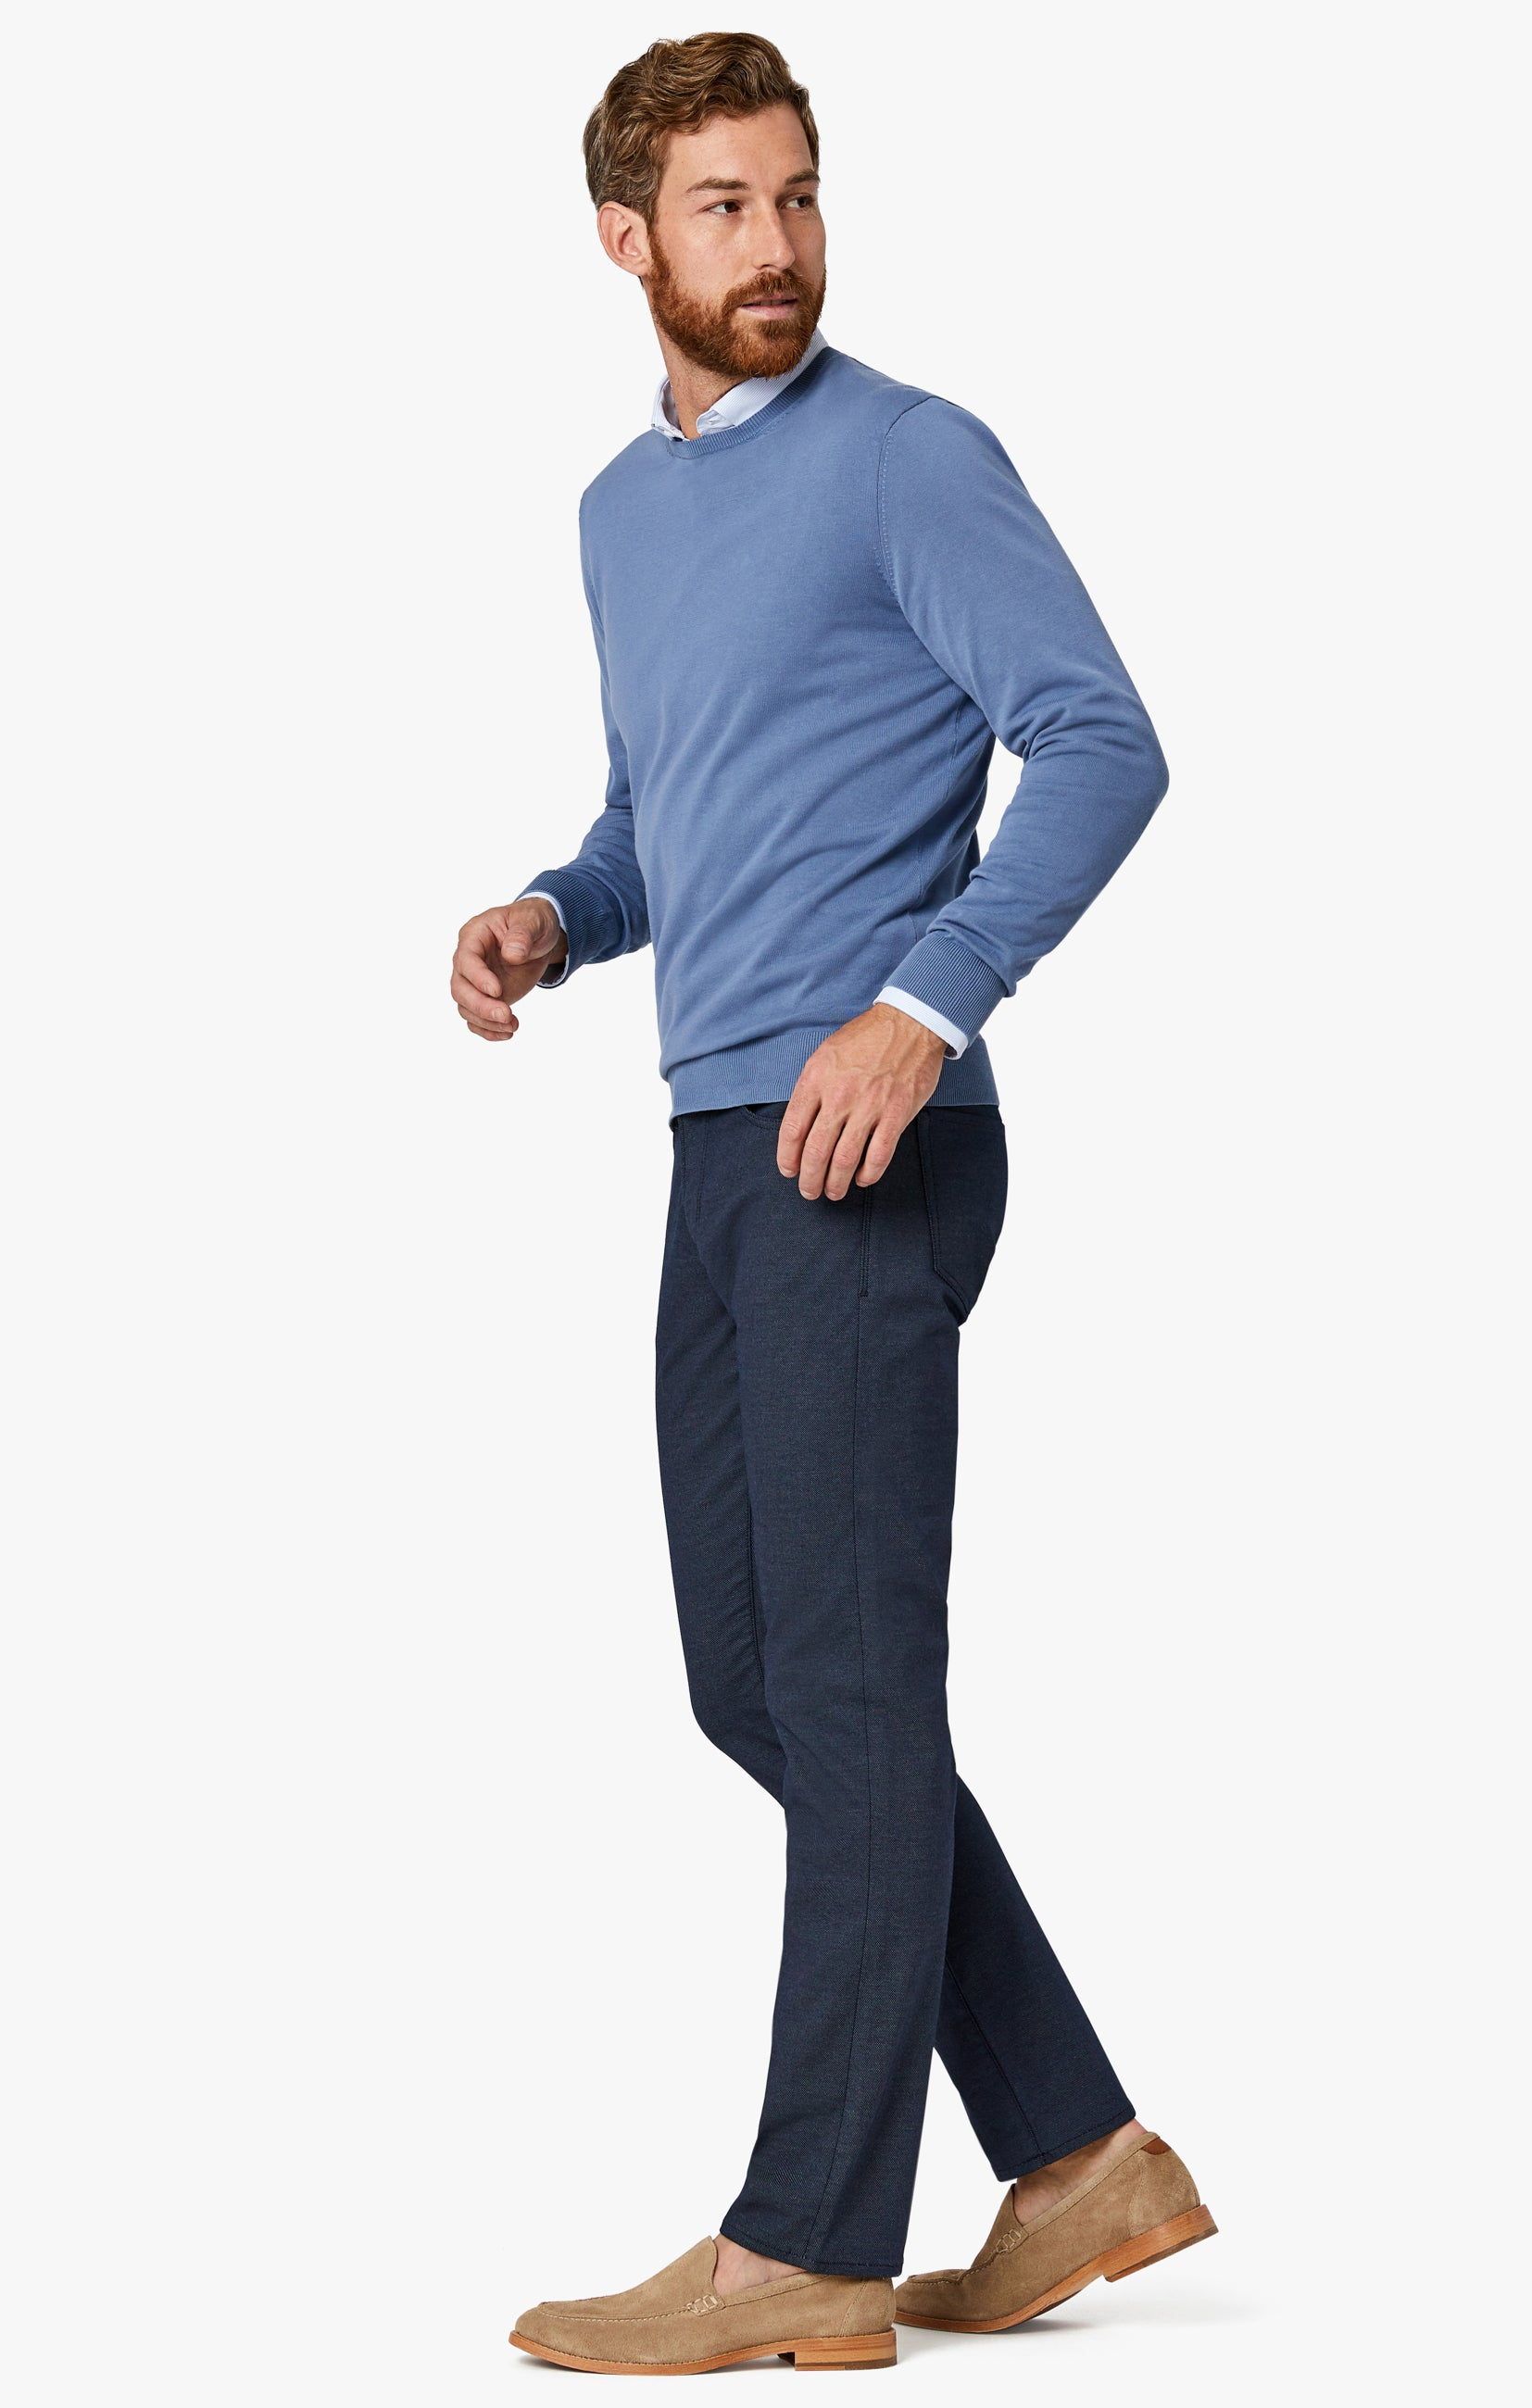 Courage Straight Leg Pants in Navy Coolmax Image 8